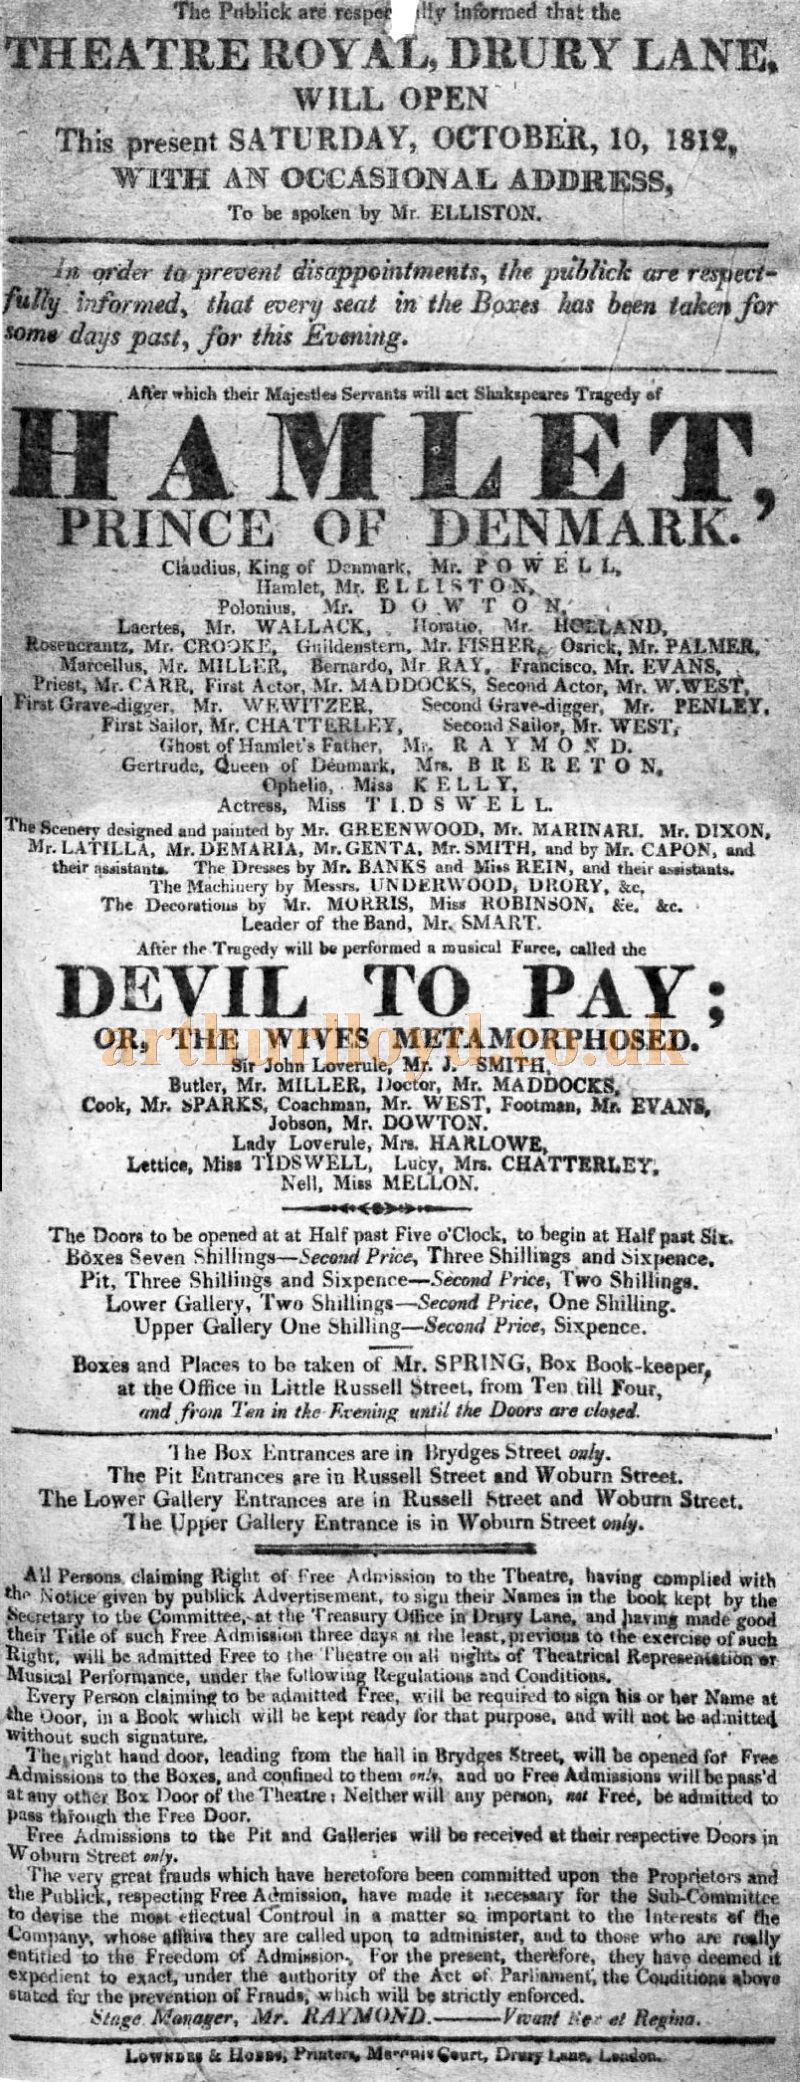 A Bill for the opening of the fourth and present Theatre Royal, Drury Lane on October the 10th 1812